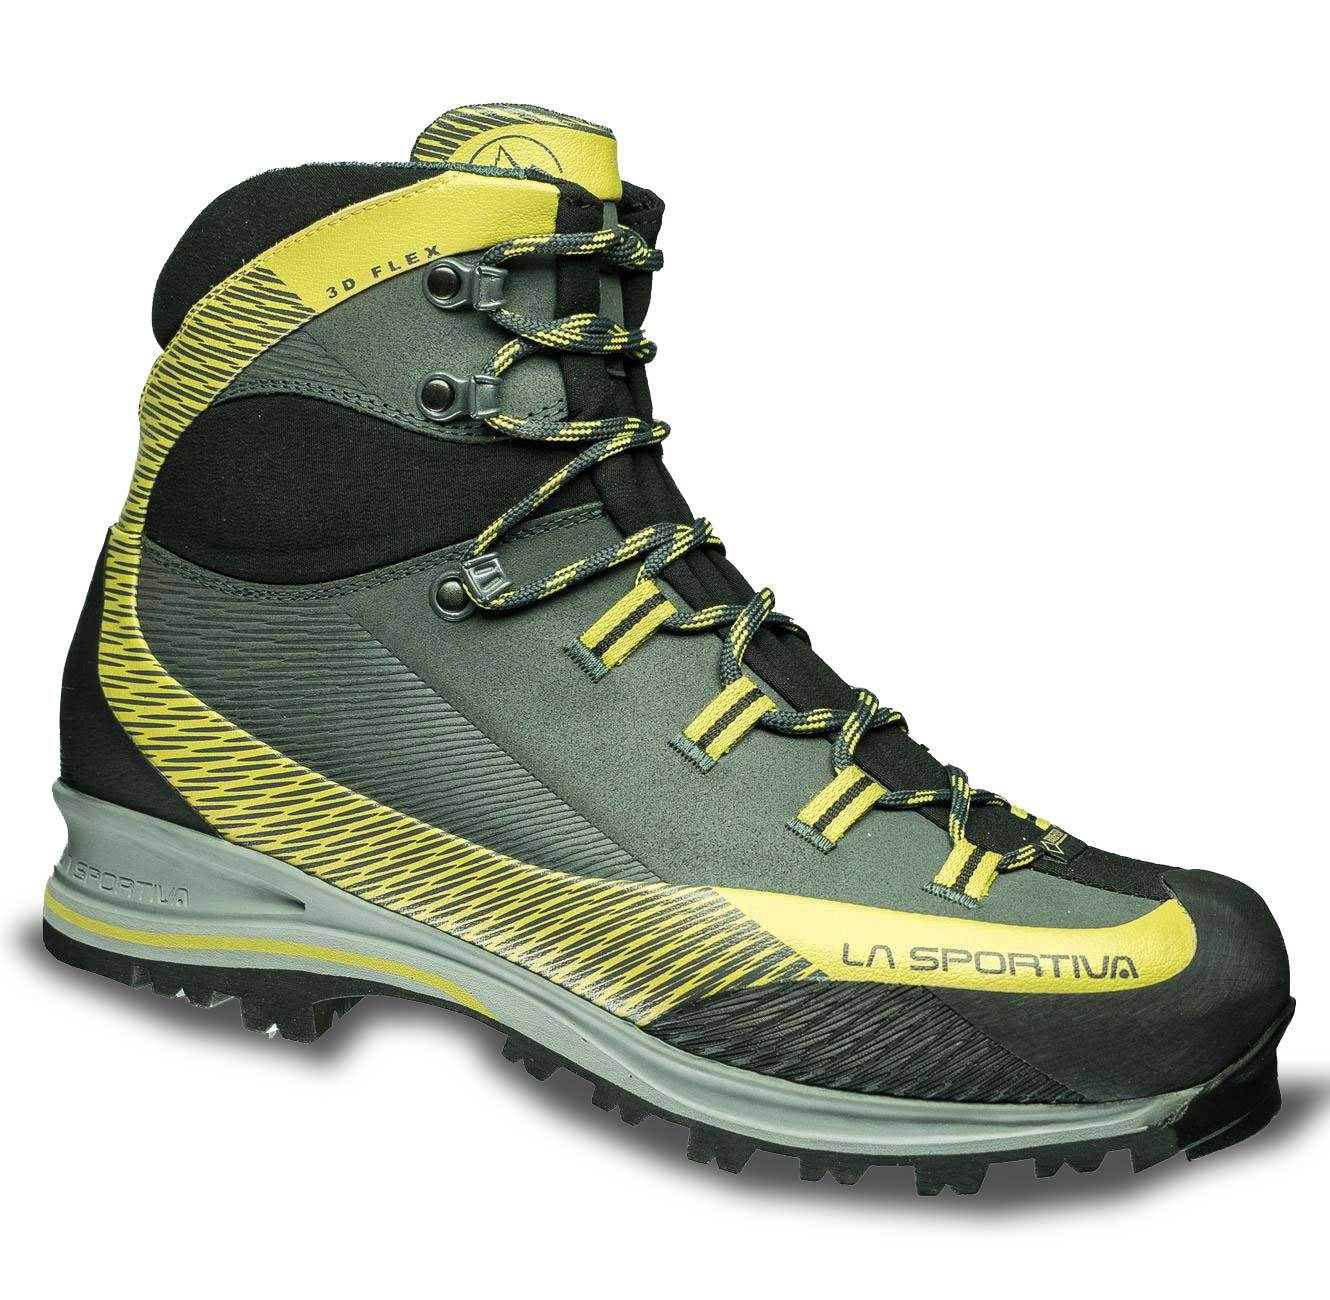 La Sportiva TRK Leather GTX, Herre